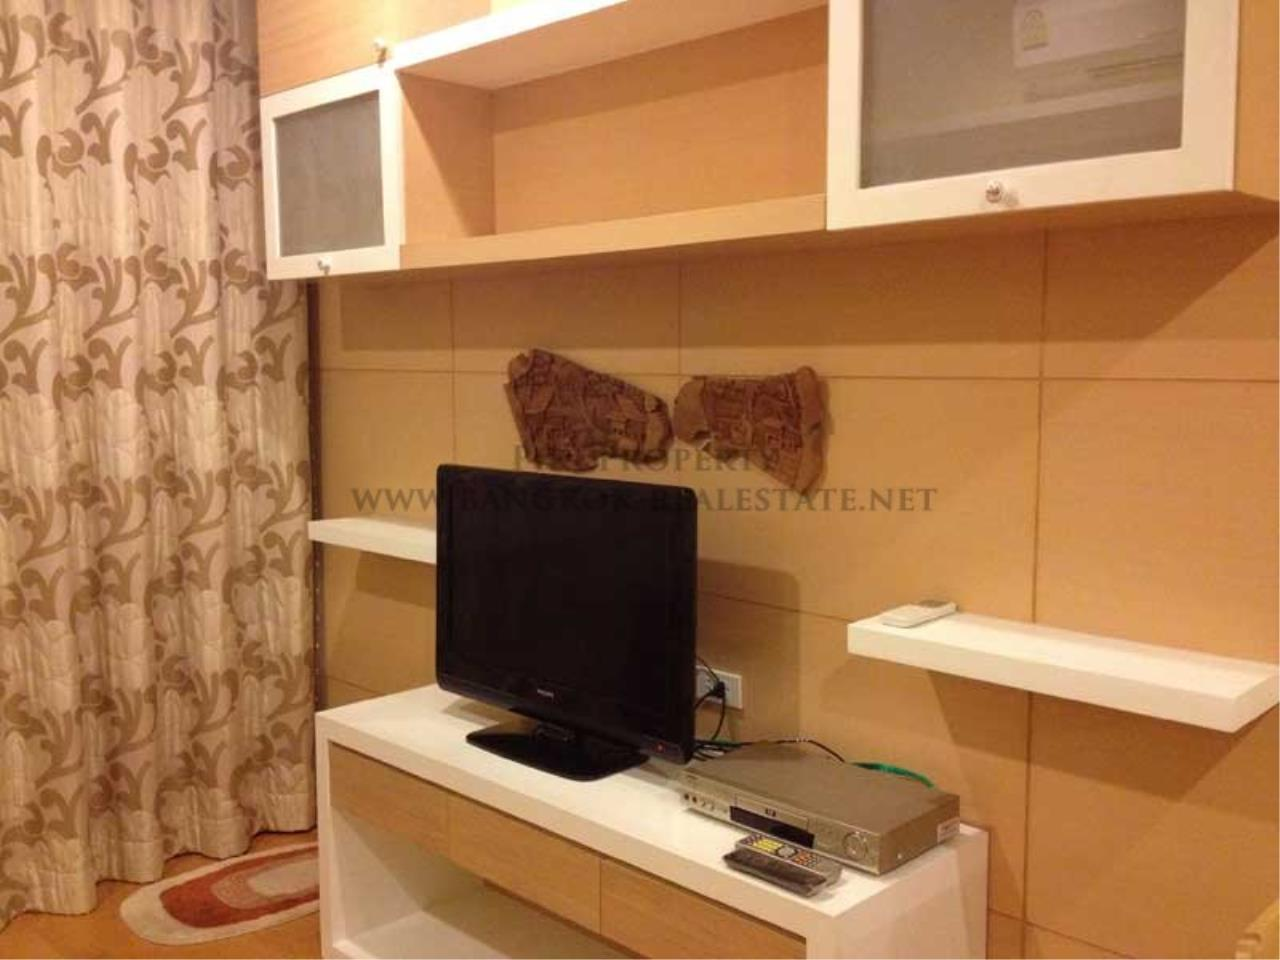 Piri Property Agency's 1 Bedroom in Villa Ratchatewi - Fully furnished on 25th Floor 4